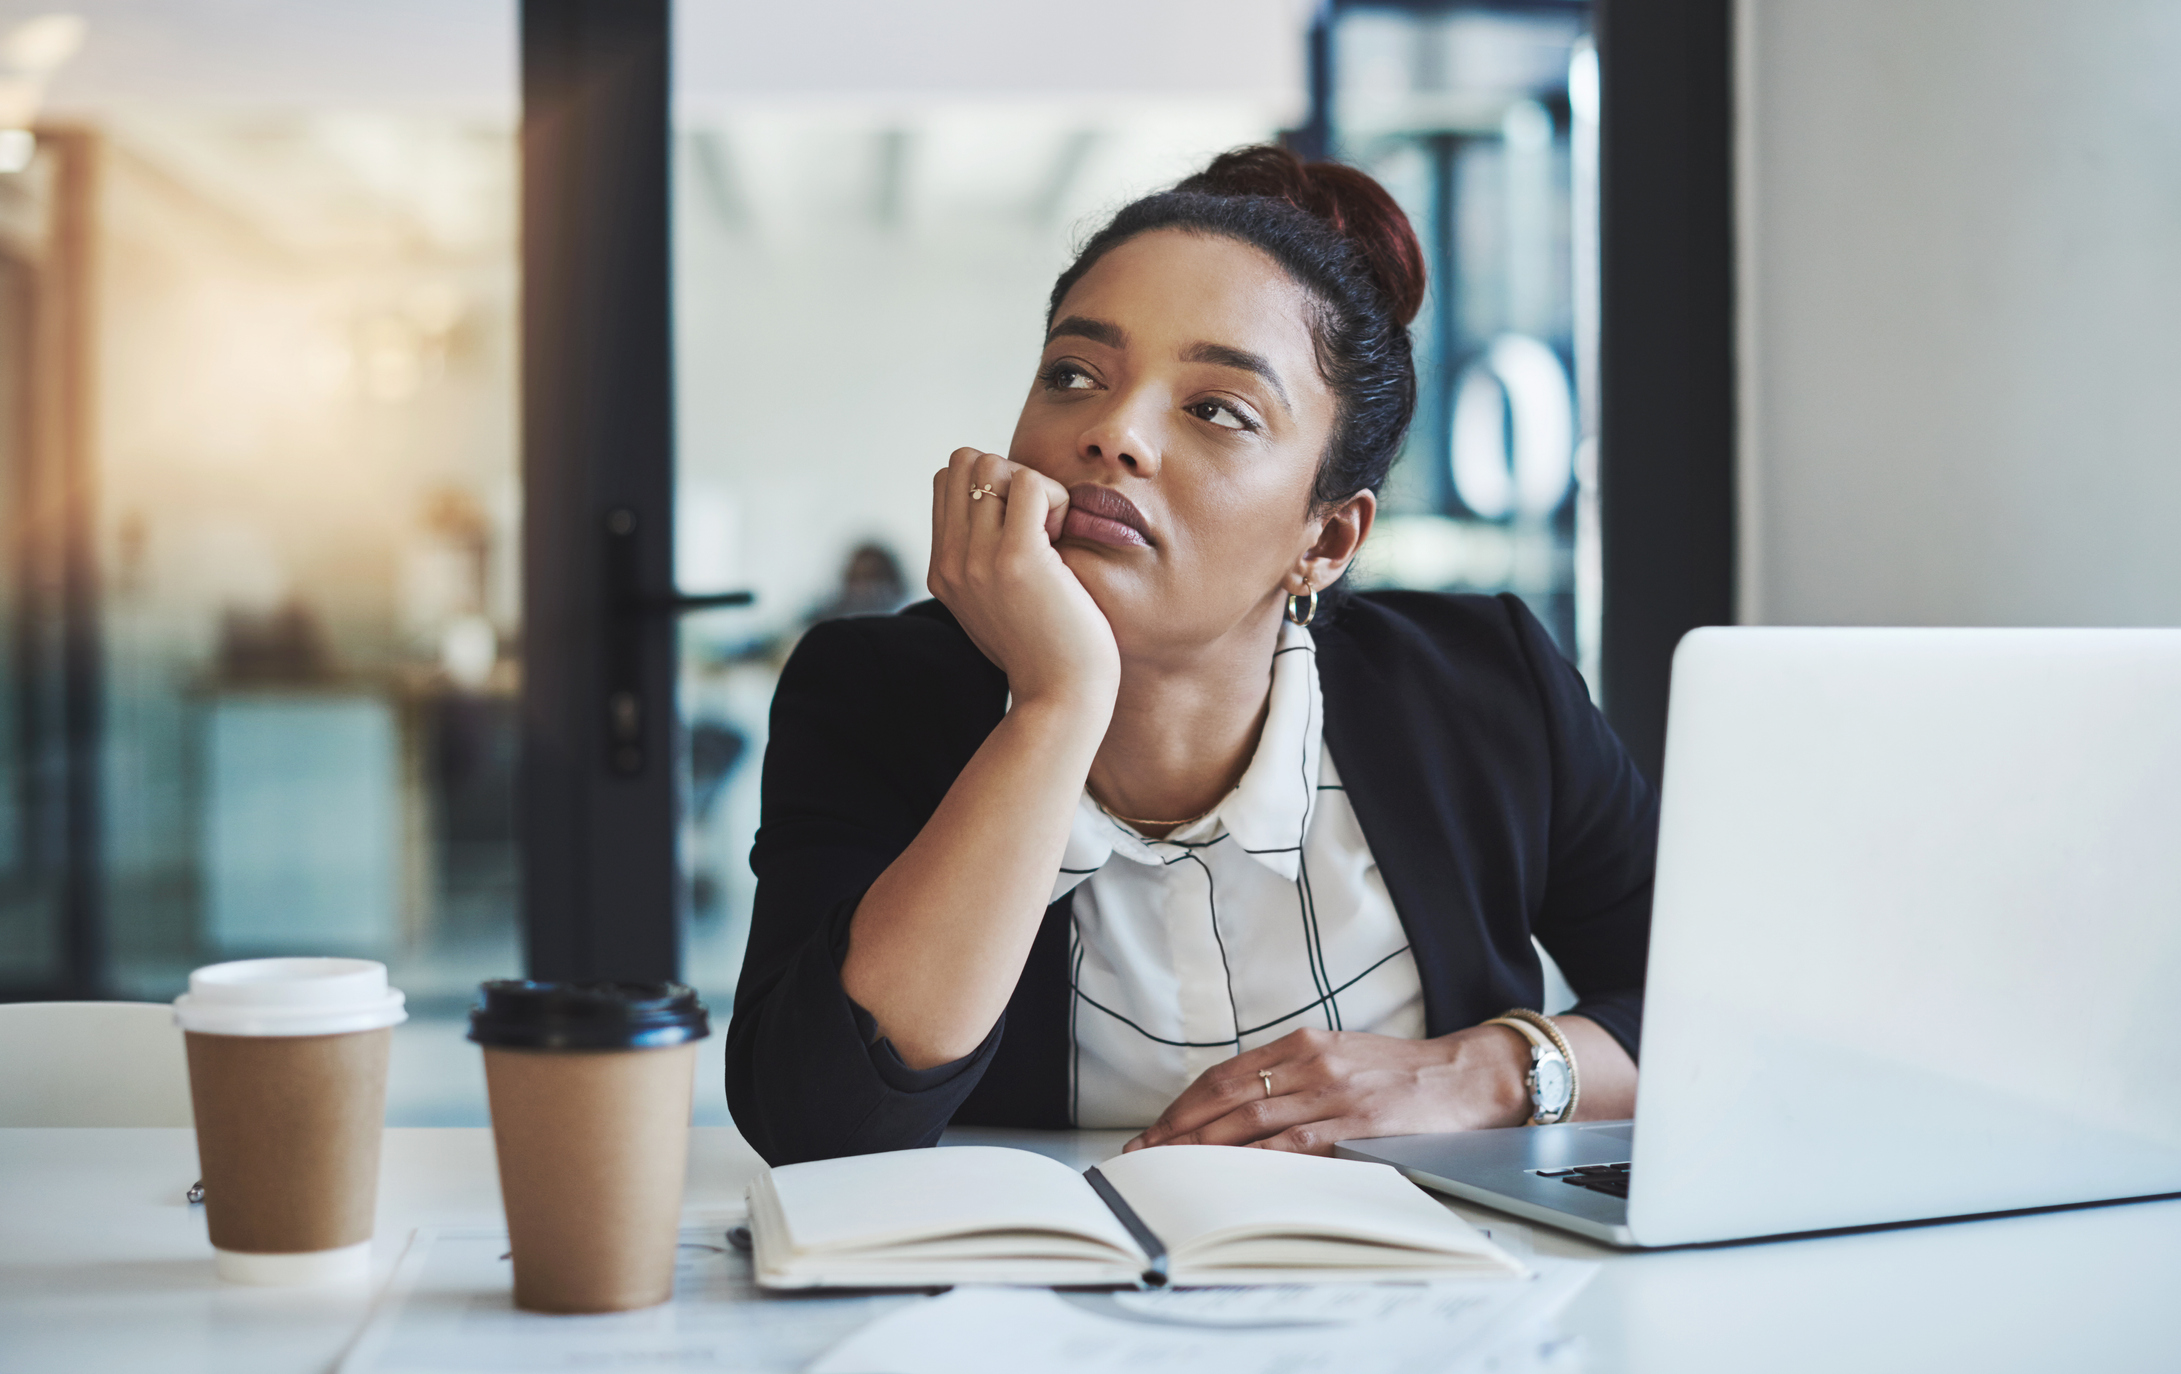 Shot of a young businesswoman looking bored while working at her desk in a modern office